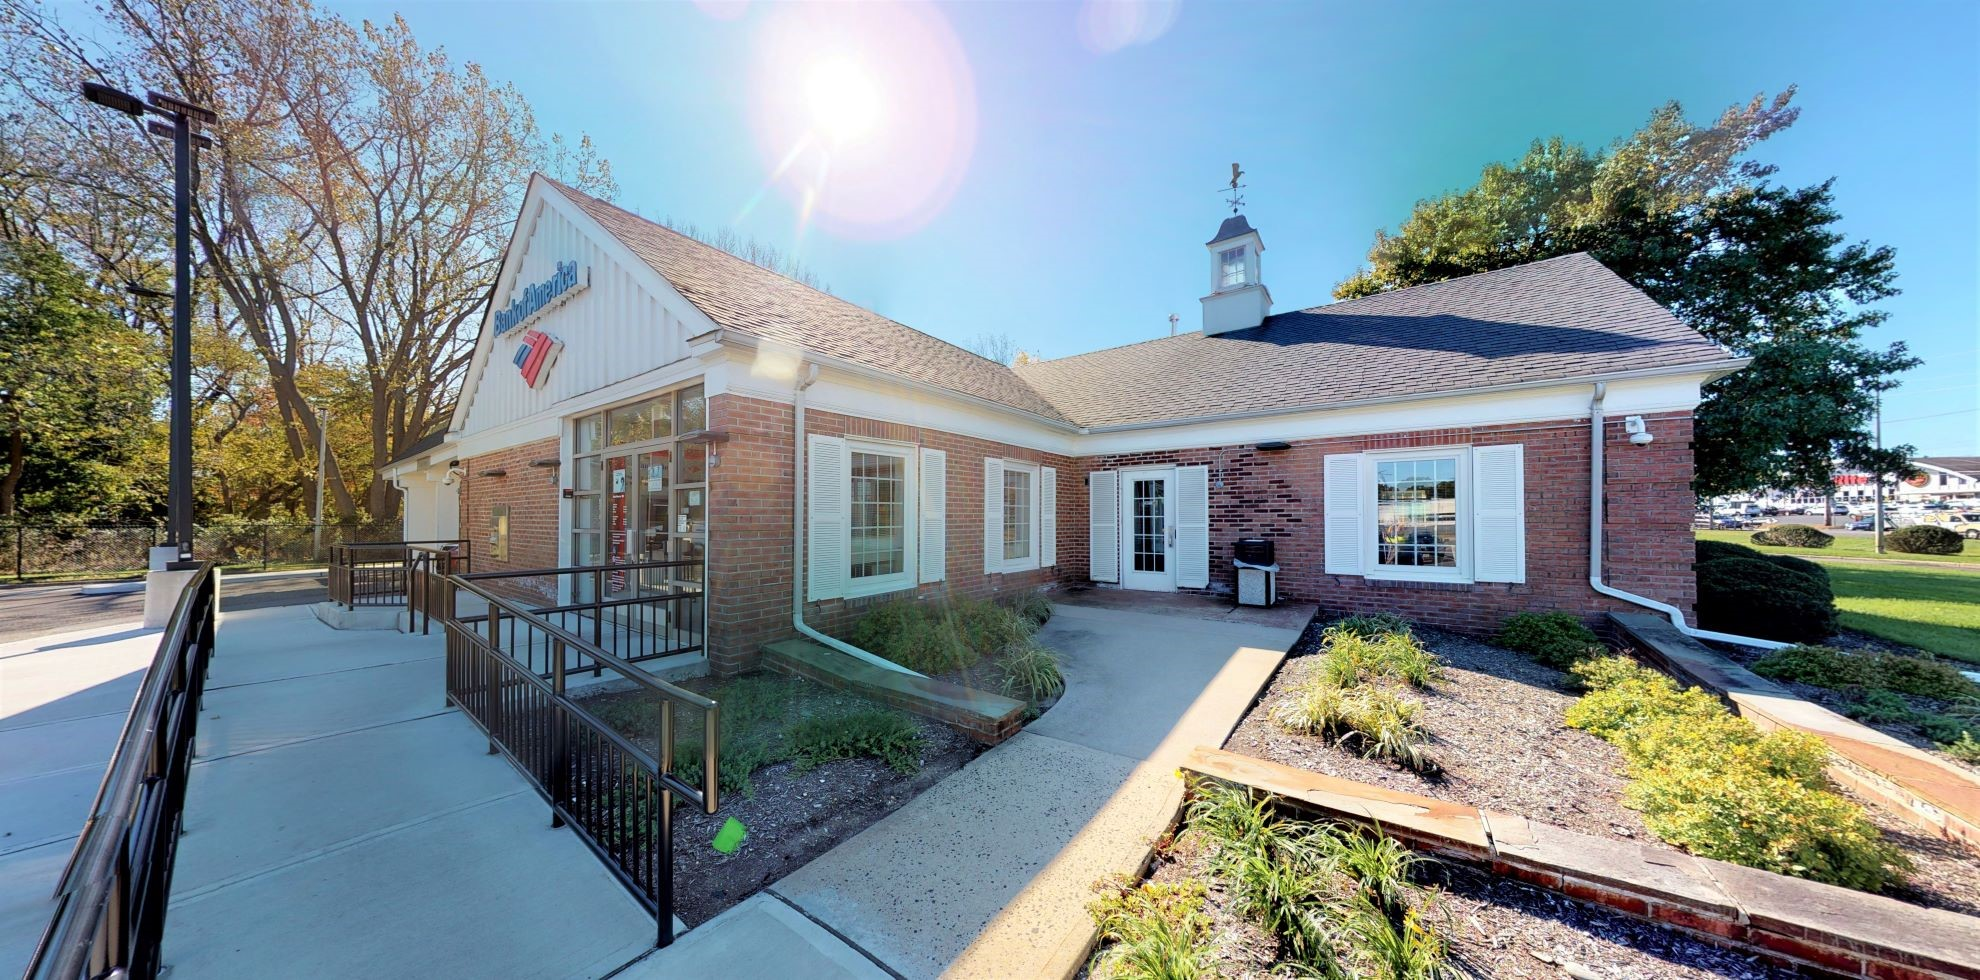 Bank of America financial center with drive-thru ATM   1800 Route 35, Wall Township, NJ 07719